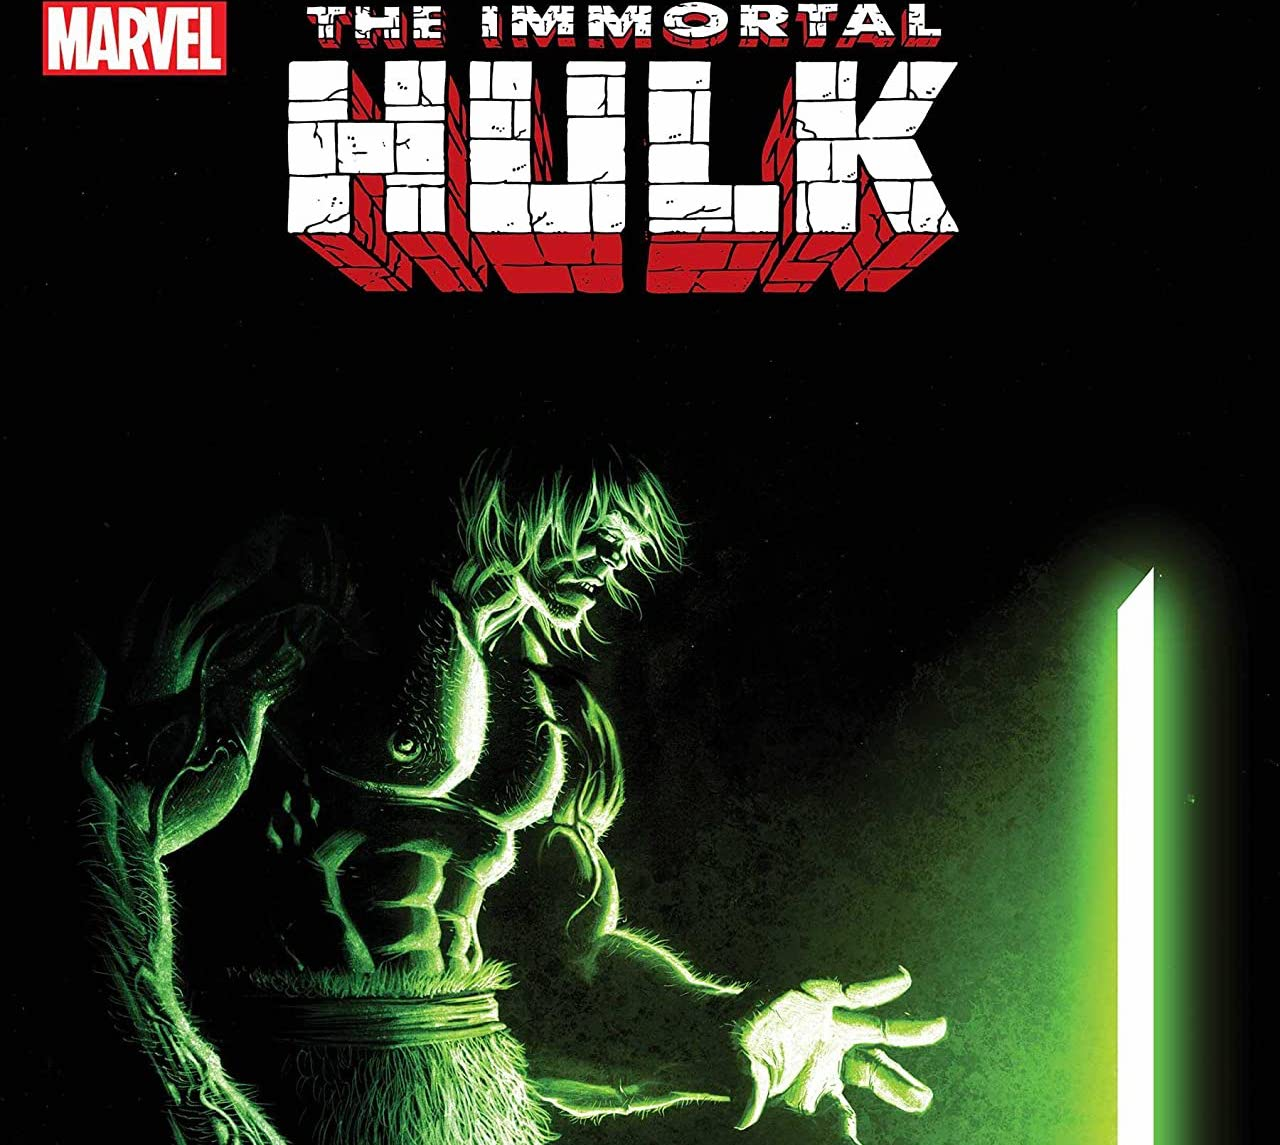 'Immortal Hulk: Time of Monsters' #1 turns your stomach in the best ways